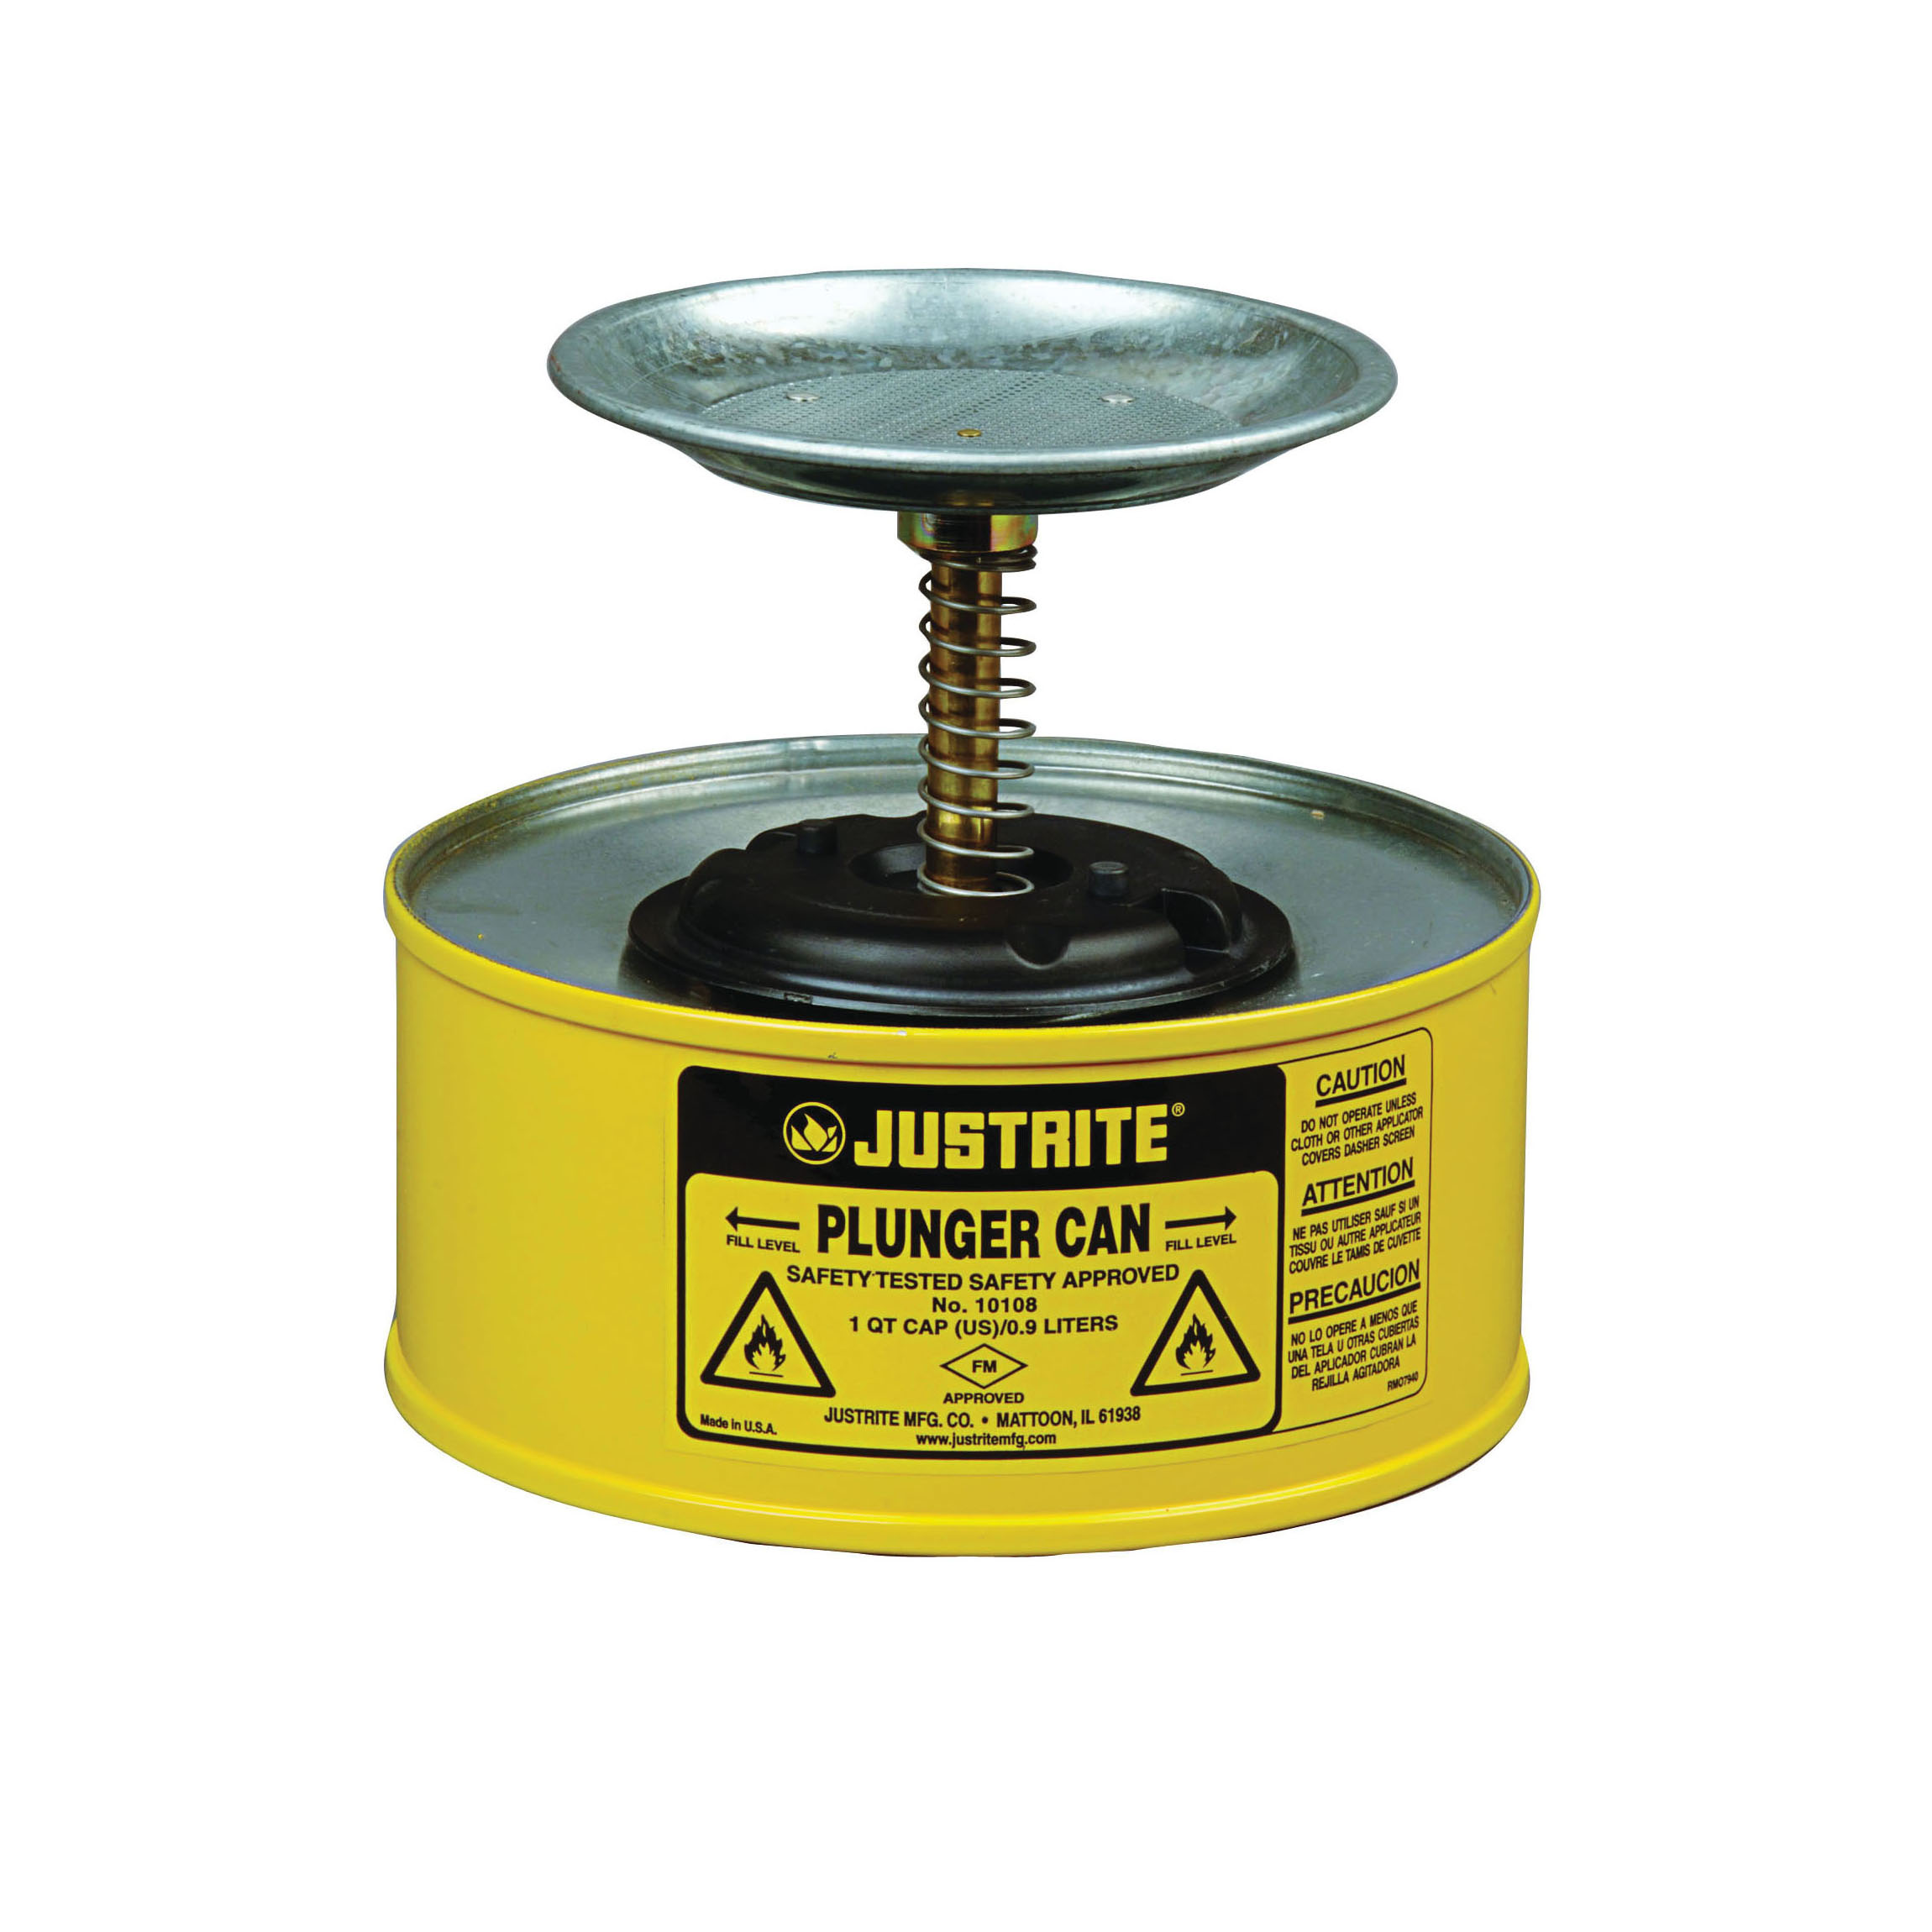 Justrite® 10118 Plunger Dispensing Can, 1 qt, Steel, Yellow, Brass/Ryton® Plunger, 5 in Dia Dasher Plate